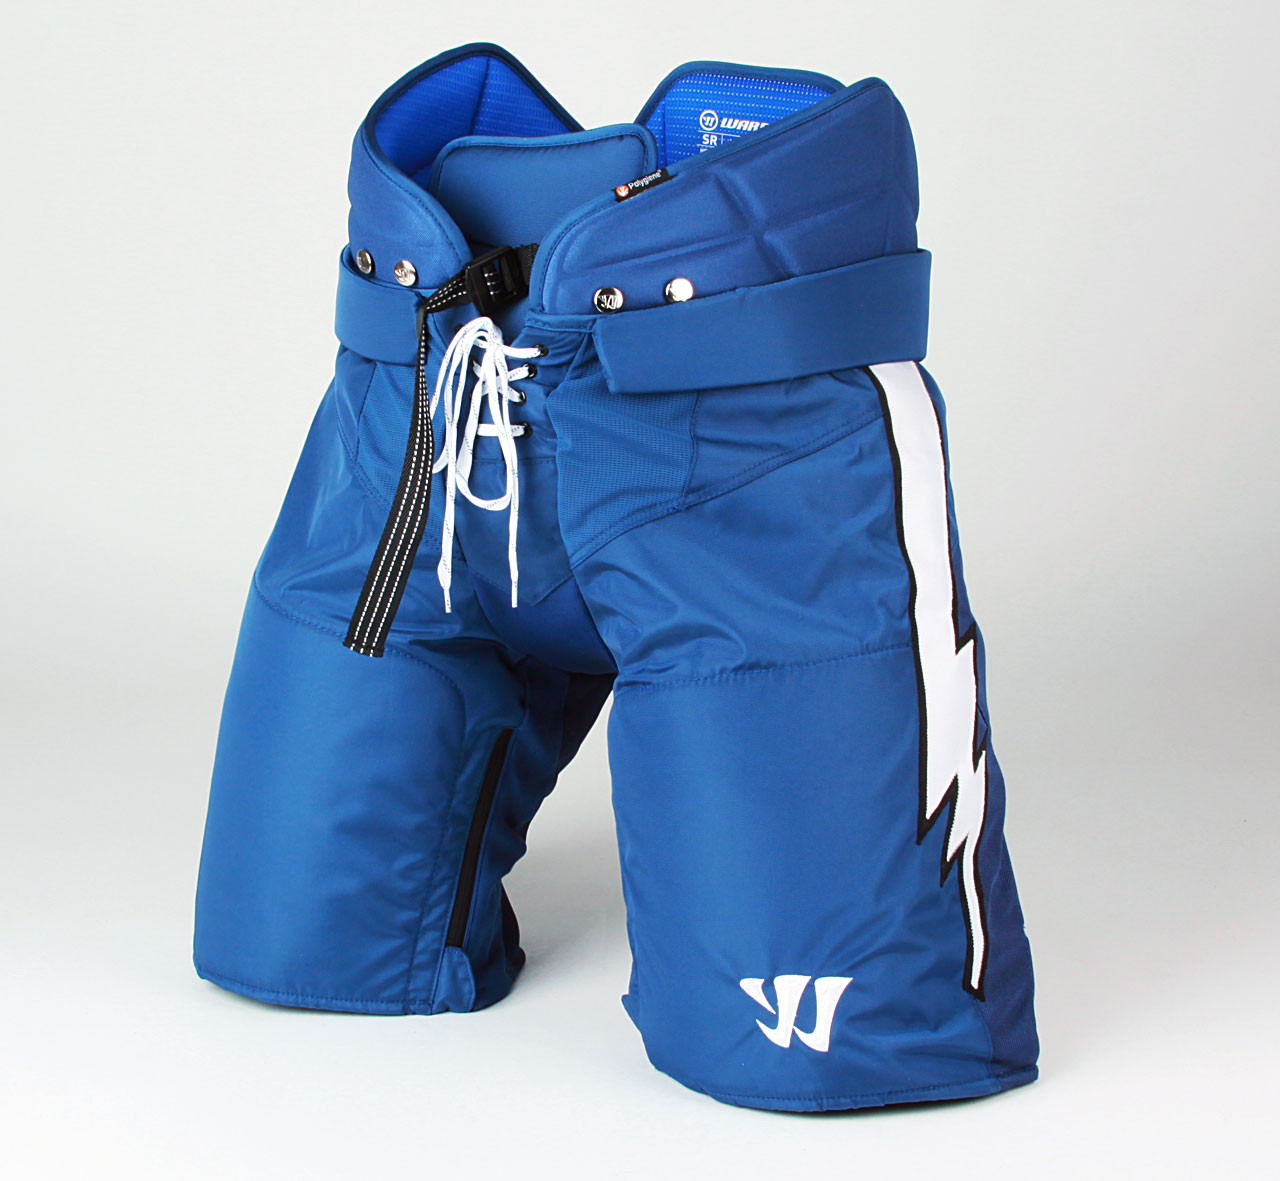 2966e157964 Size L - Warrior Covert QRL Pro Pants - Team Stock Tampa Bay Lightning  5